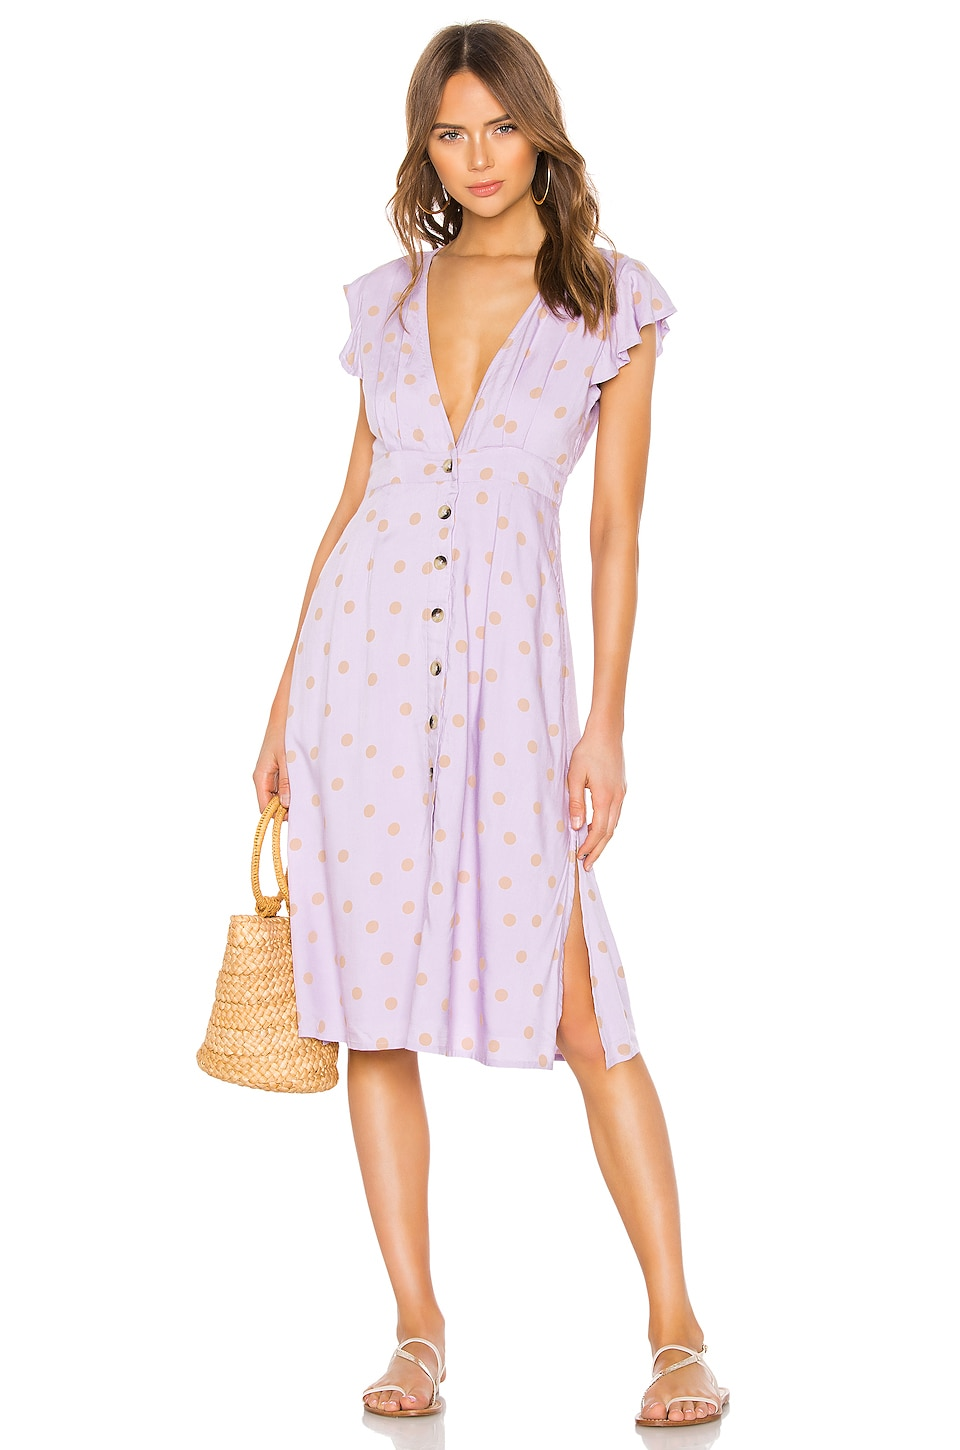 X REVOLVE Jordan Dress             L*SPACE                                                                                                                                         Sale price:                                                                       CA$ 96.49                                                                  Previous price:                                                                       CA$ 191.59 14